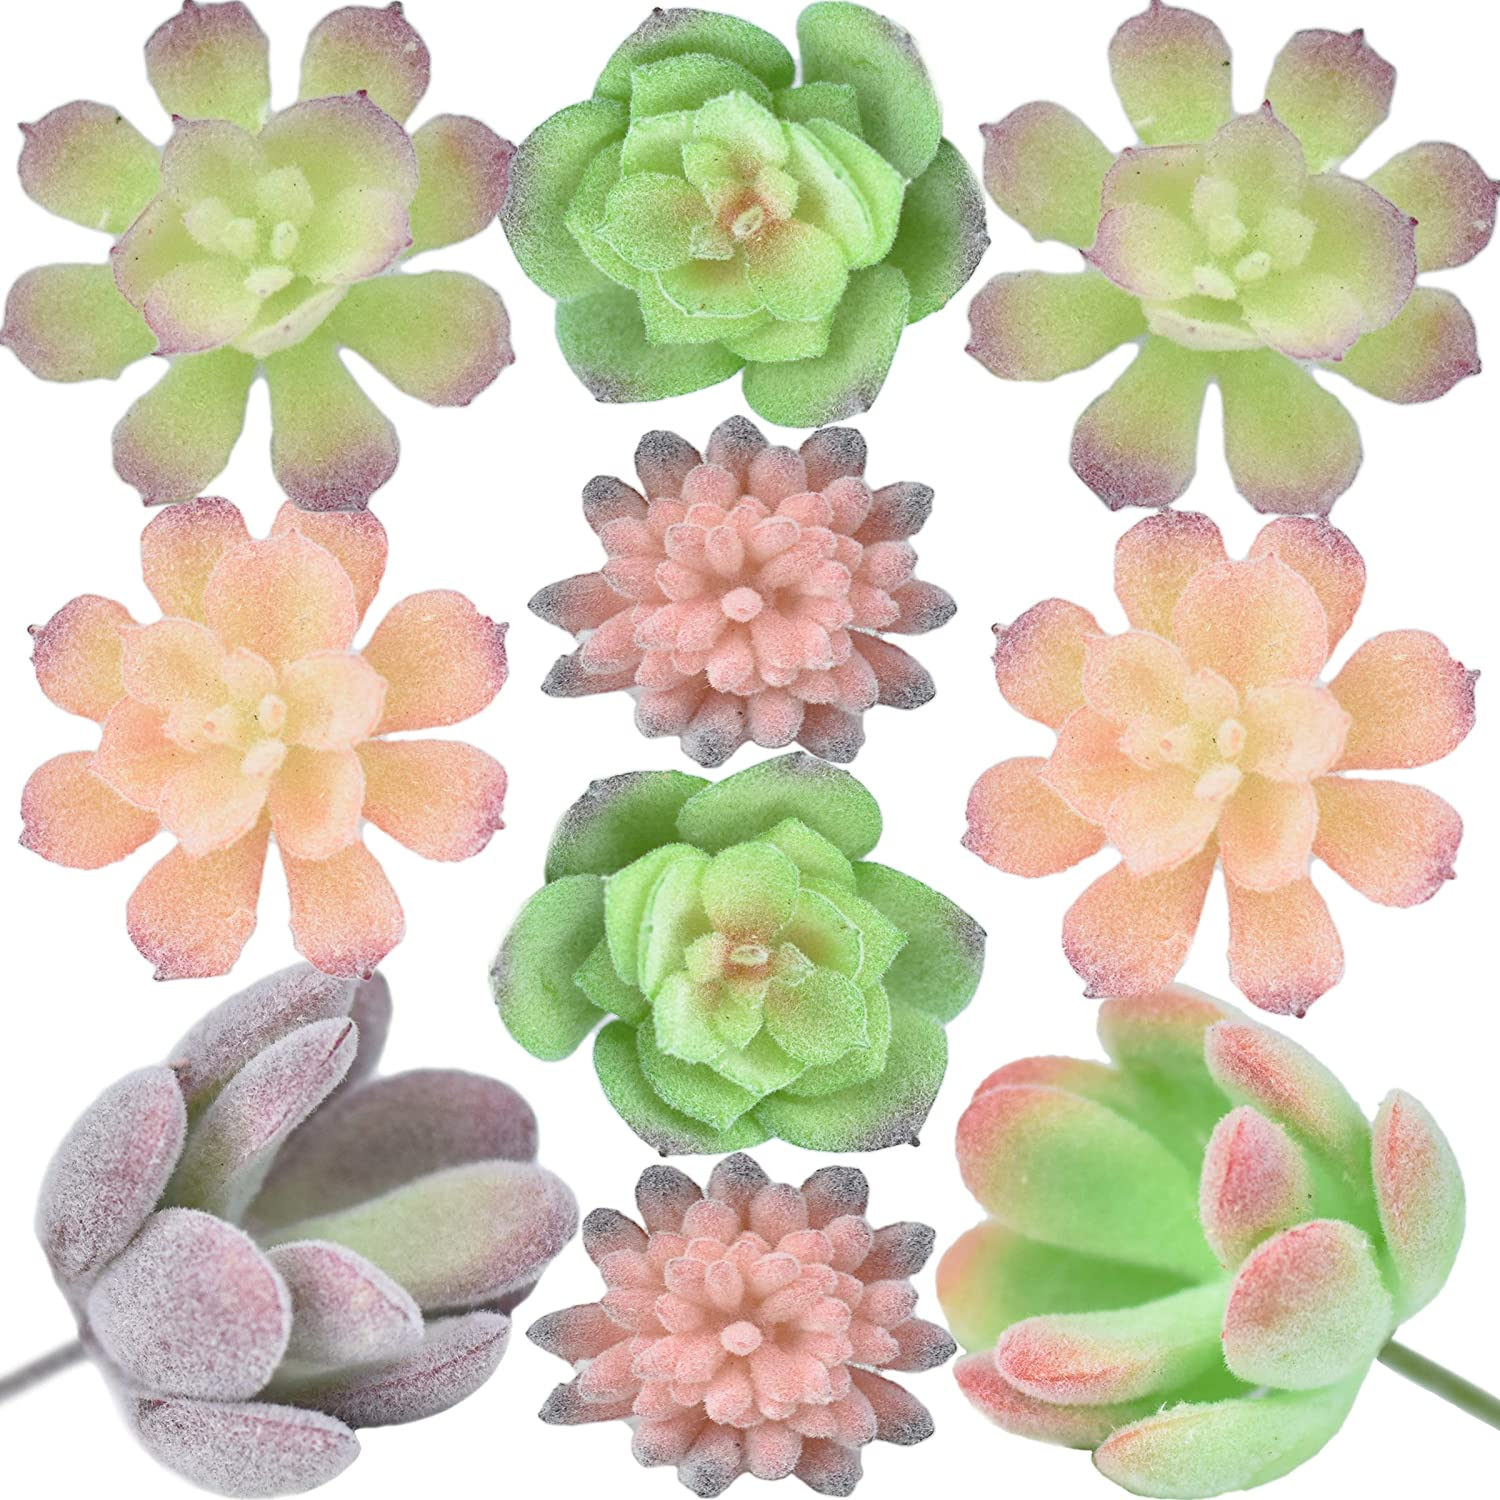 Seeko Mini Artificial Succulents - 10 Pack - Fairy Garden Accessories for Fairy Houses and Other Small Crafts (10)